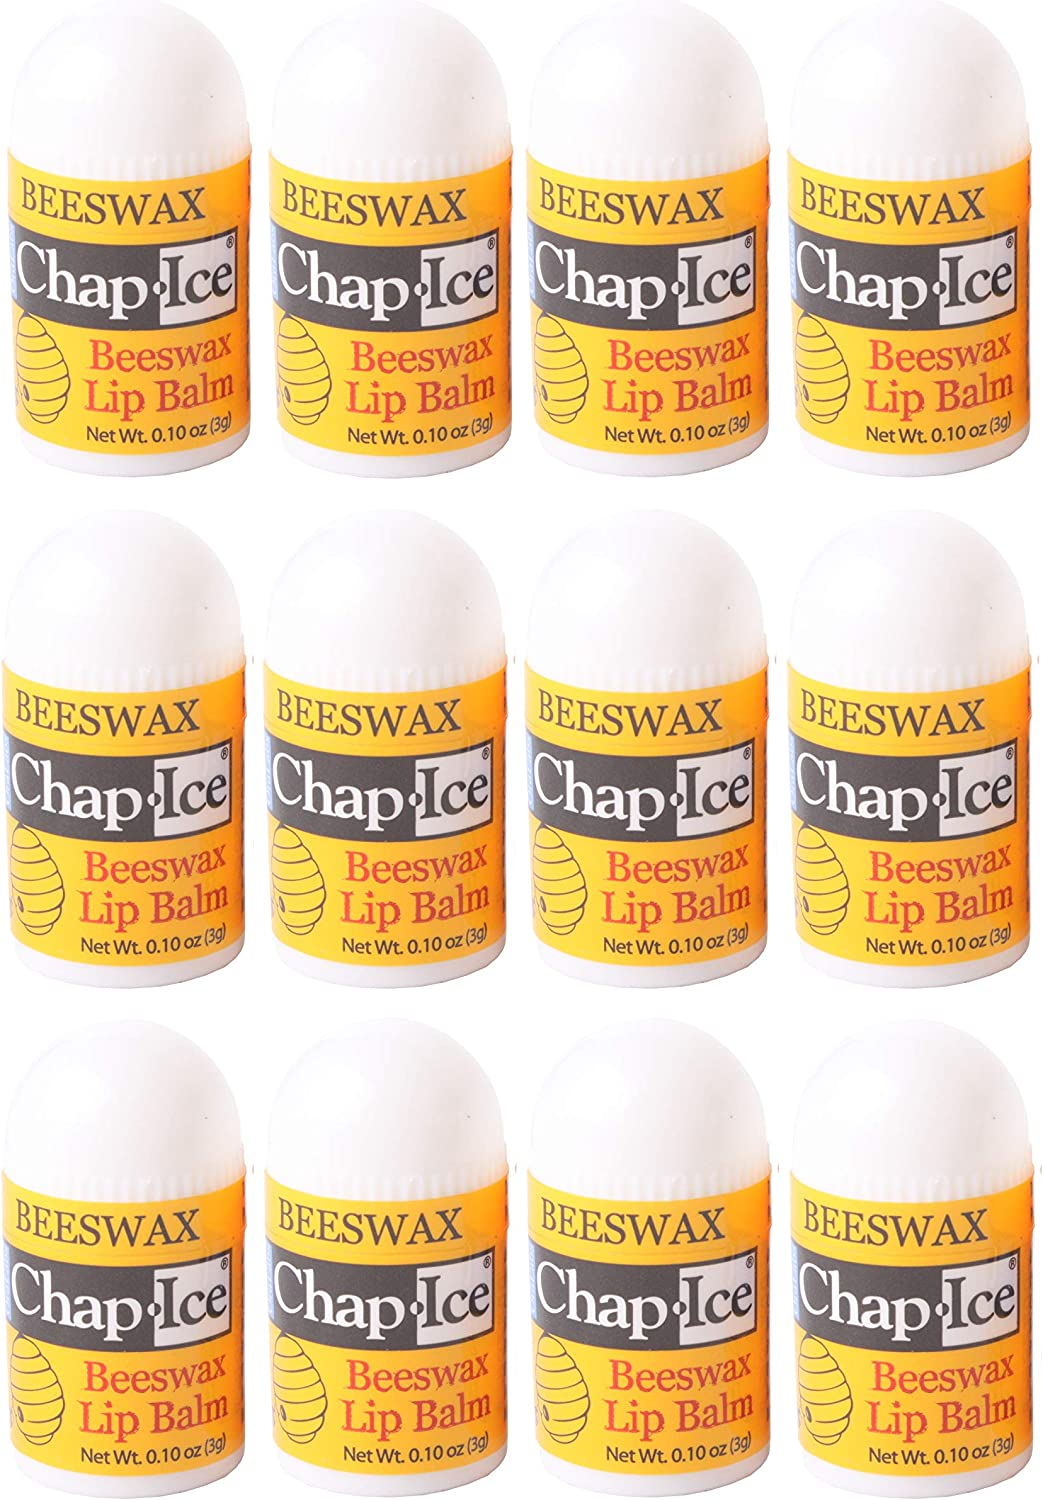 CHAP-ICE Mini Lip Balm, with Peppermint, Beeswax, 12 Count